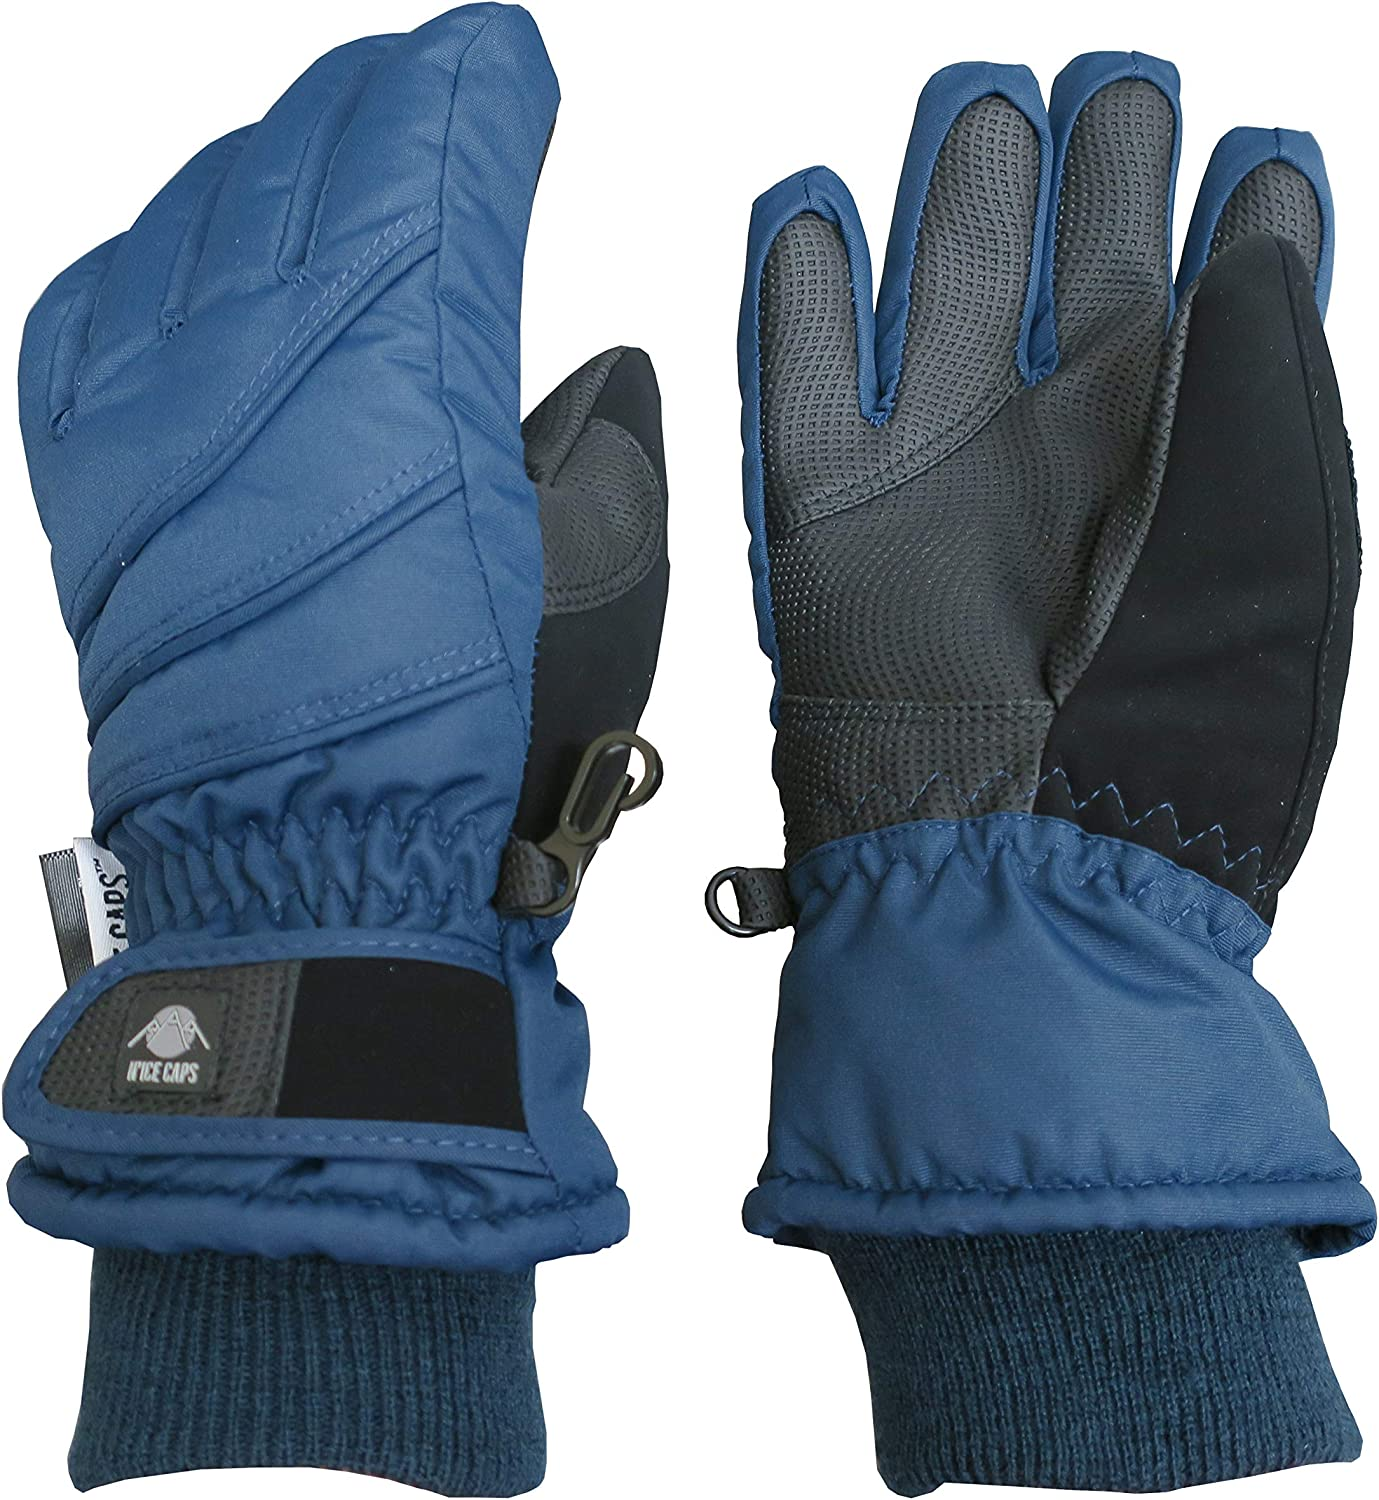 N'Ice Caps Kids Thinsulate Waterproof Bulky Winter Snow Ski Glove With Ridges : Sports & Outdoors